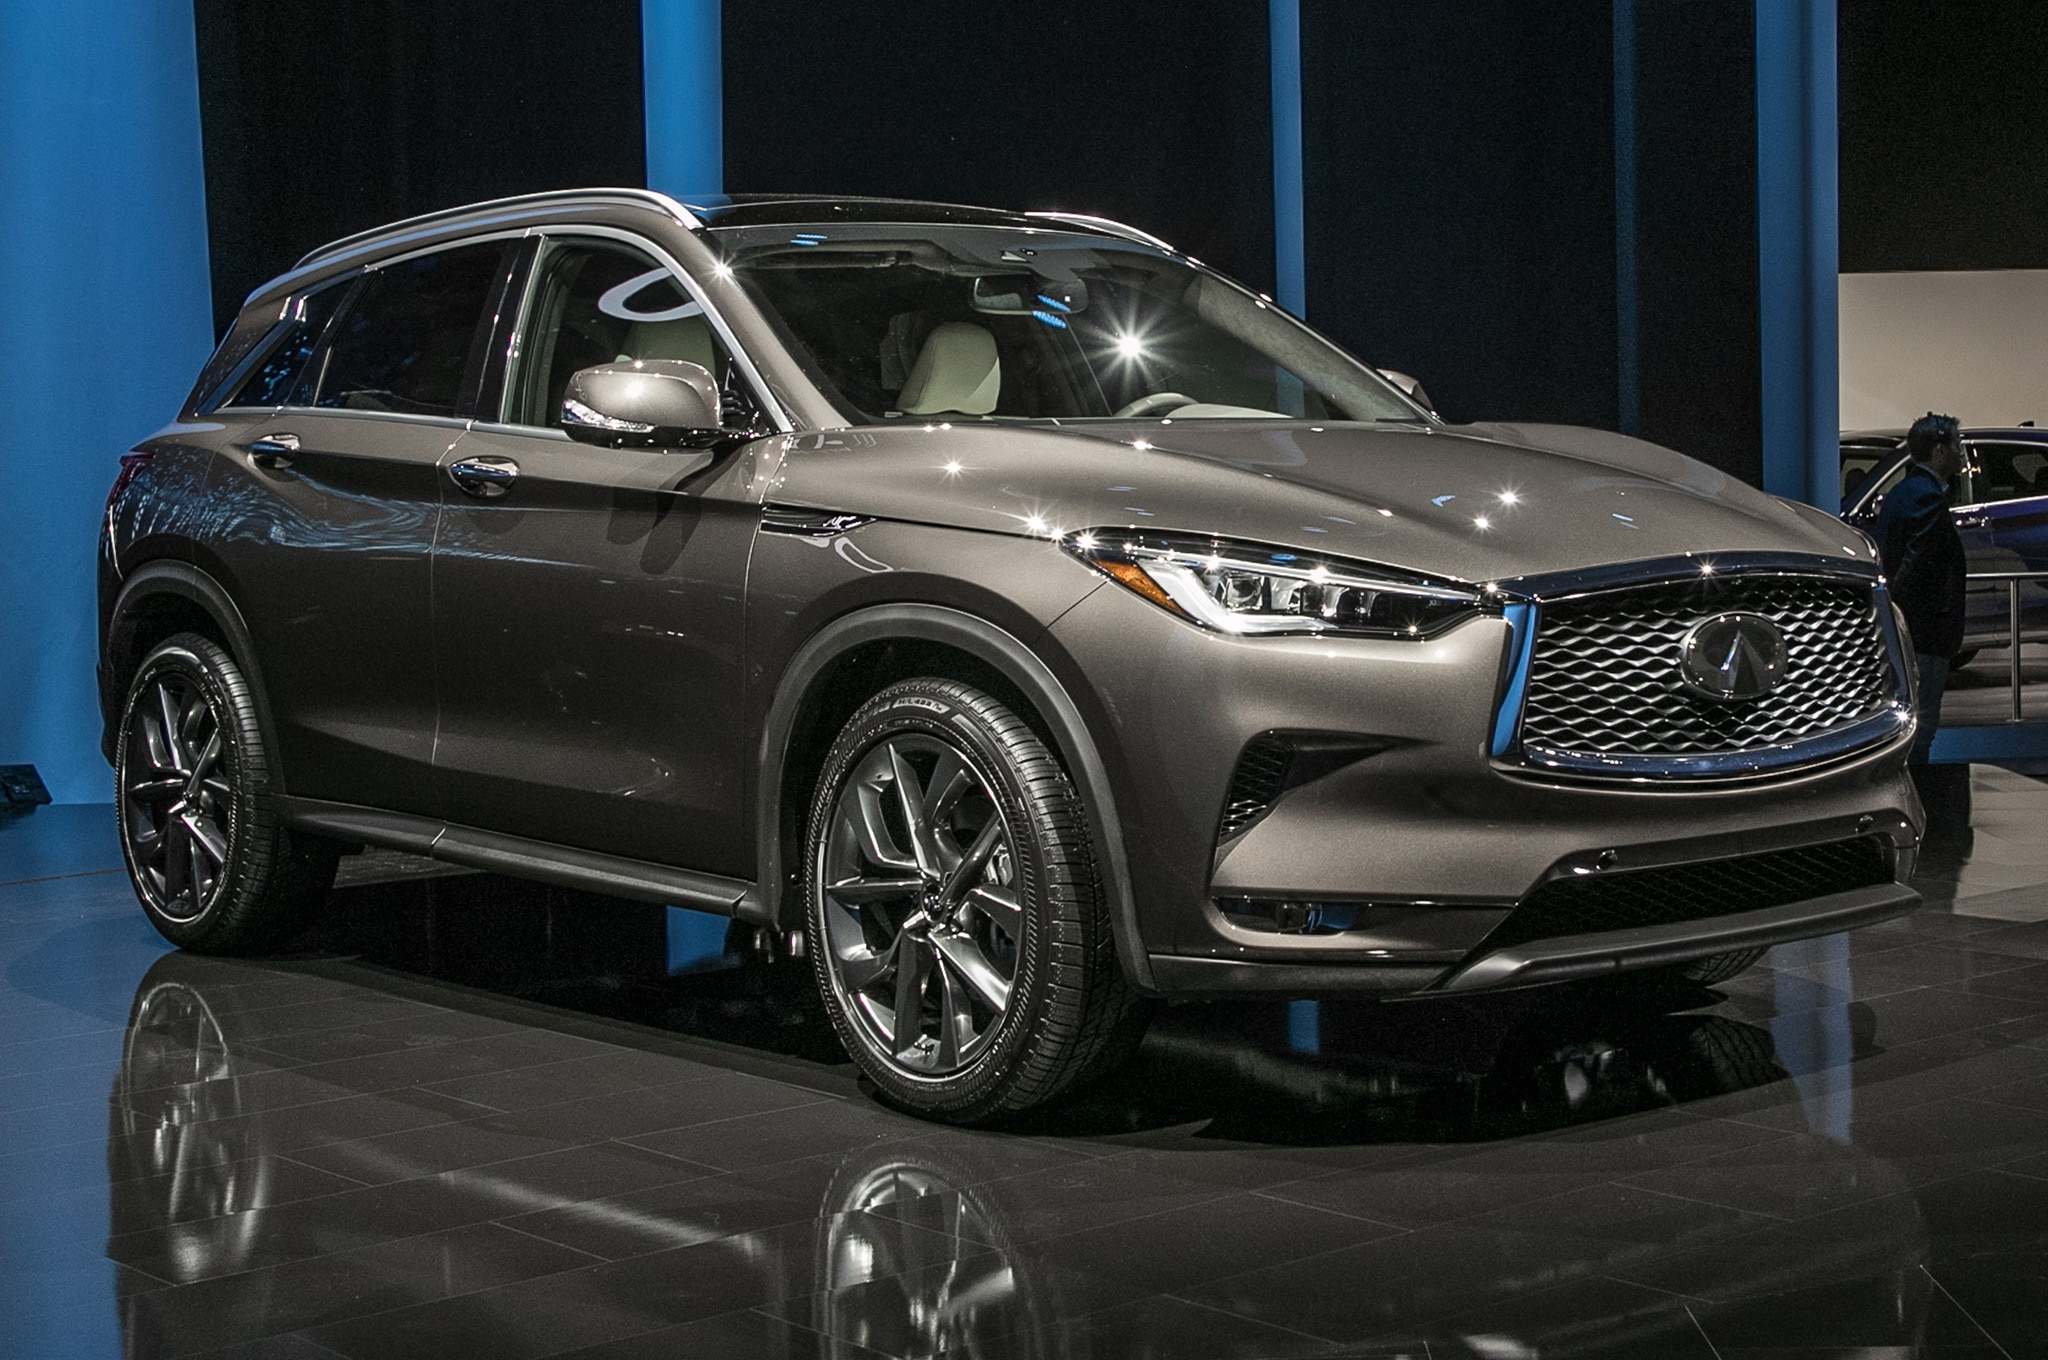 2019 Infiniti QX50 Front Side View